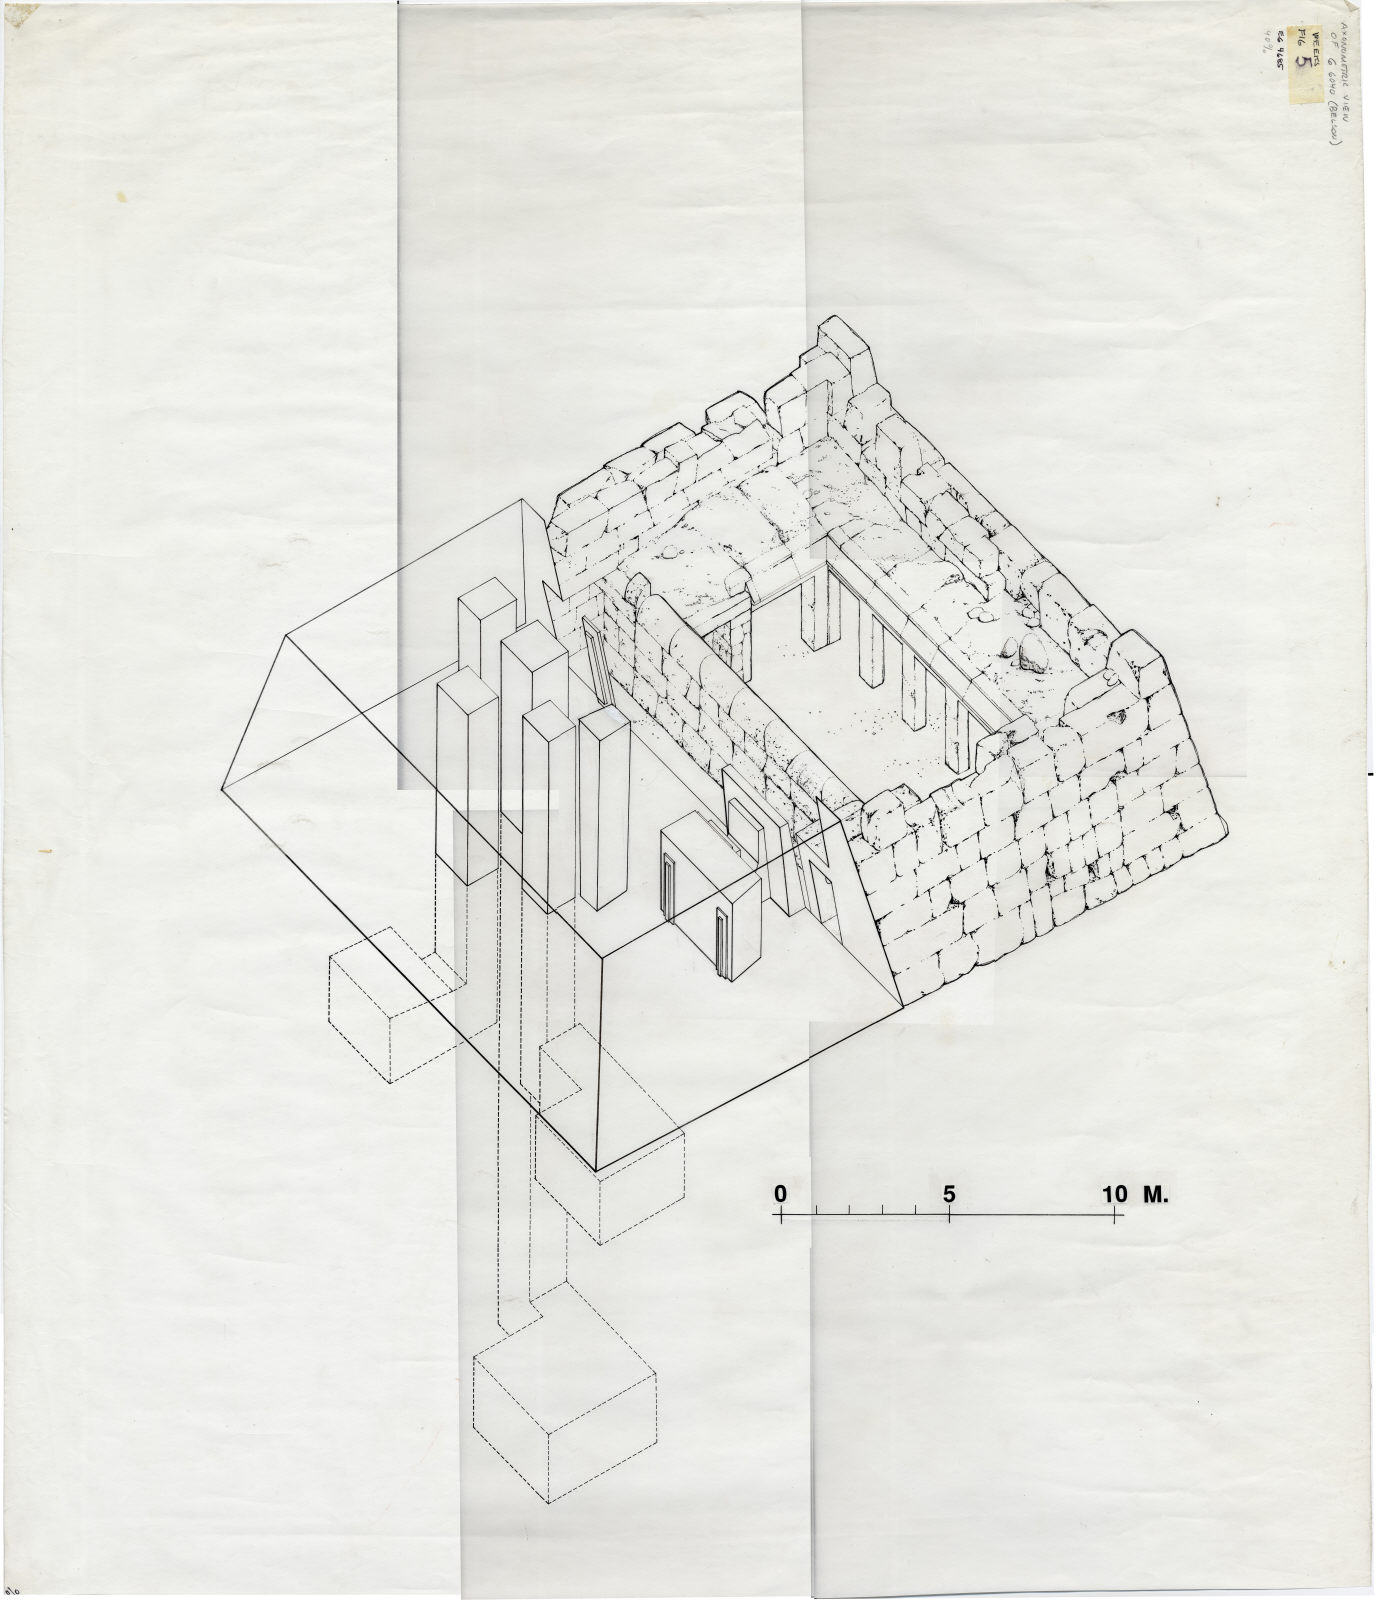 Maps and plans: G 6040: axonometric view